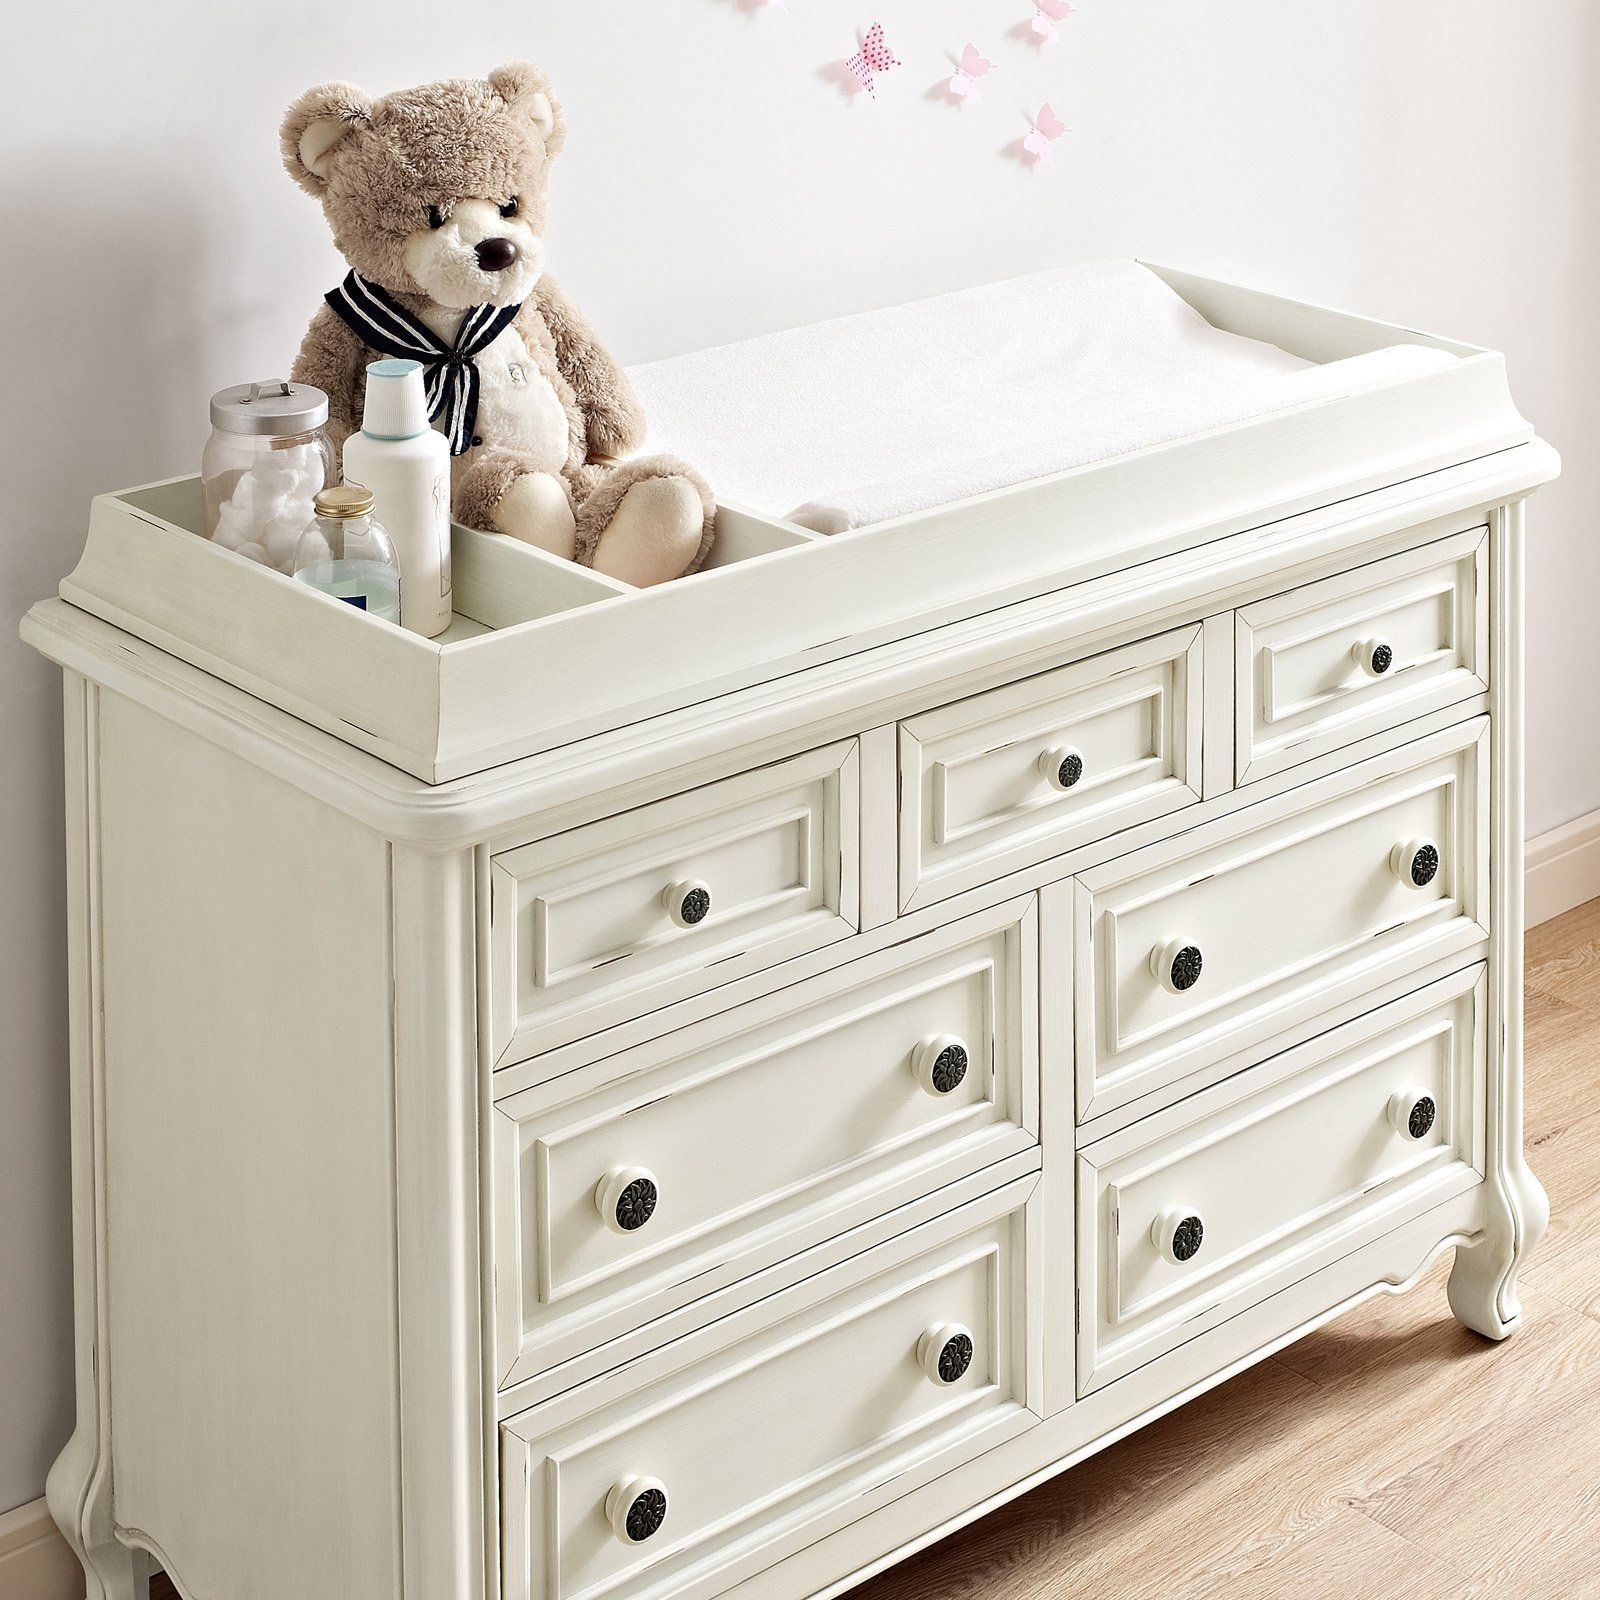 Baby knightly changing topper from